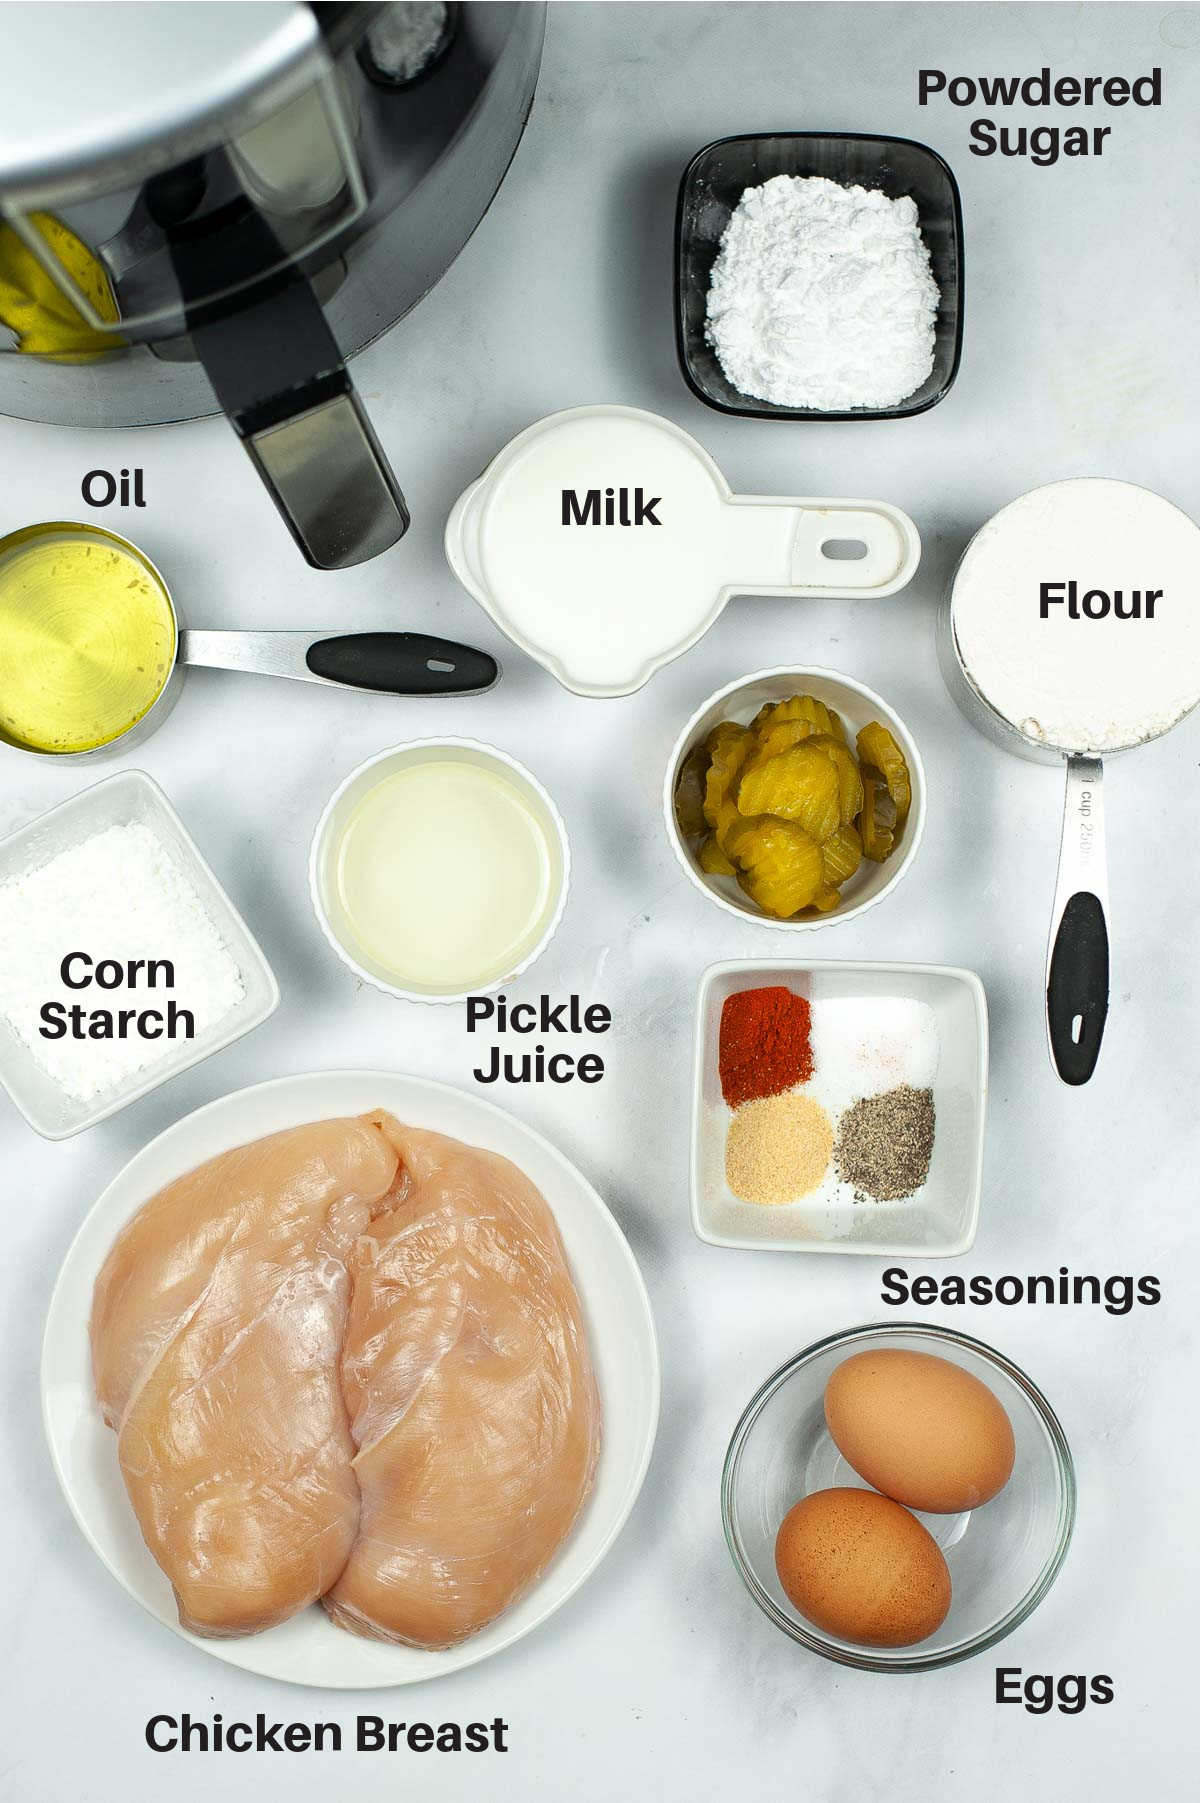 ingredient photo showing everything on a white counter with labels.